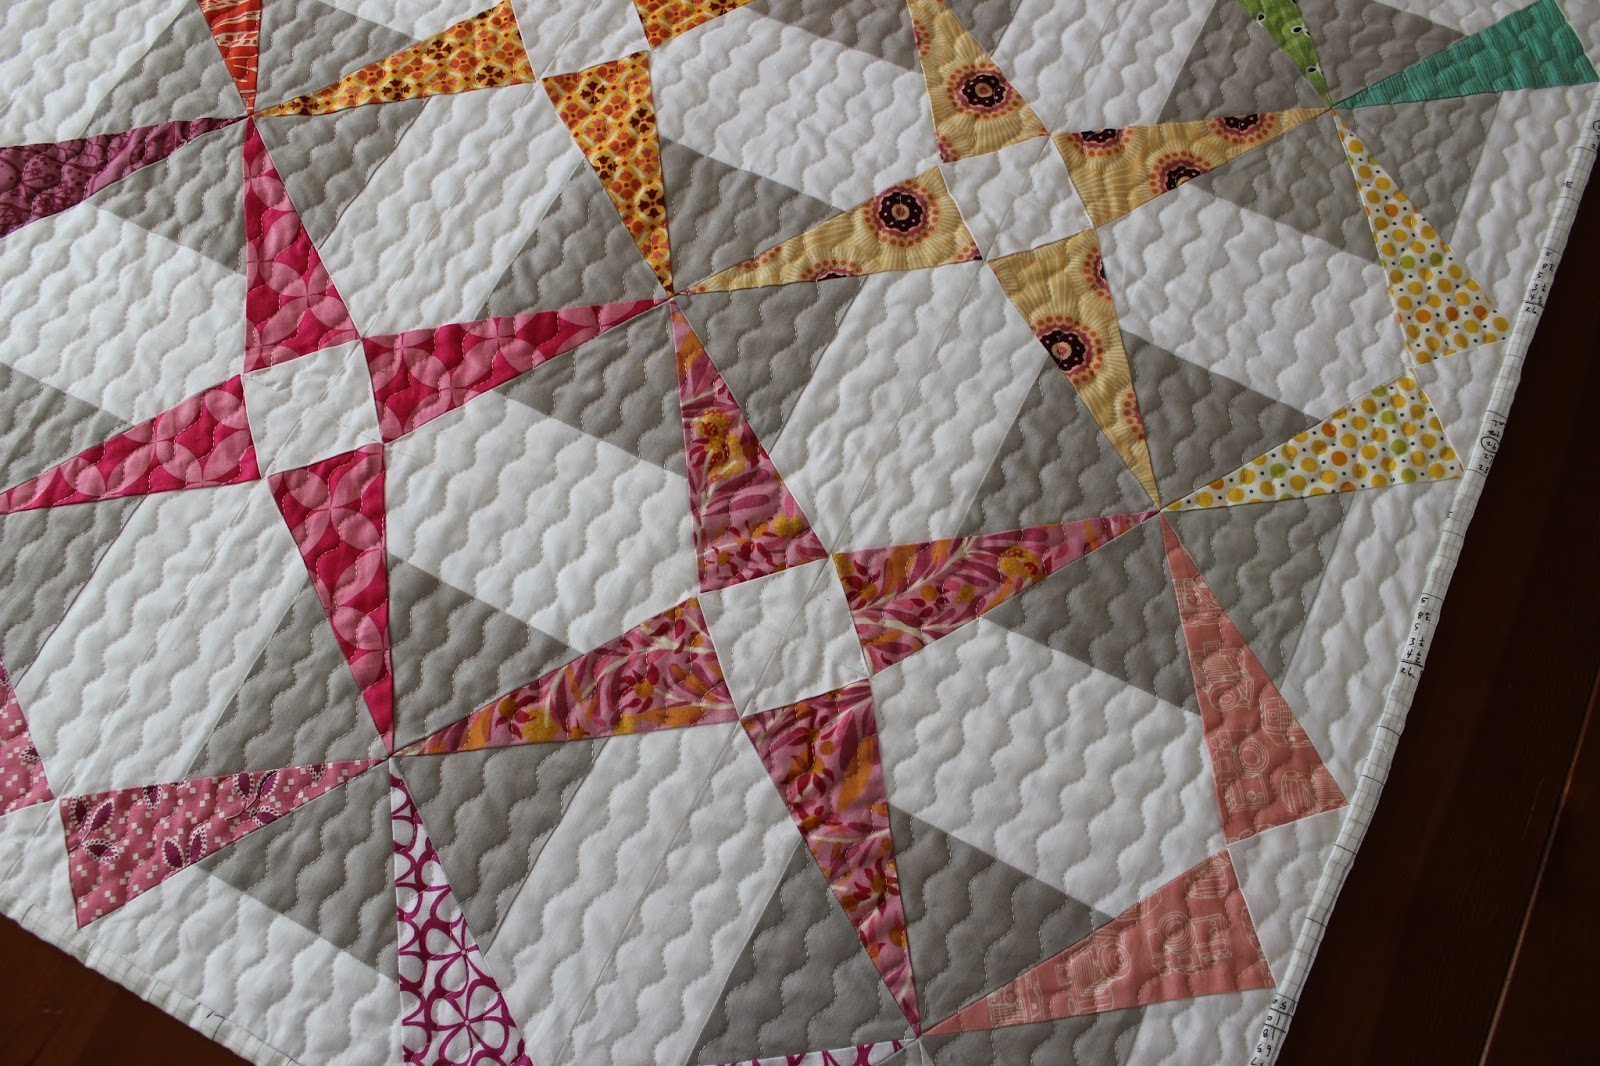 Teaginny Designs: Introducing the Chromascope Quilt